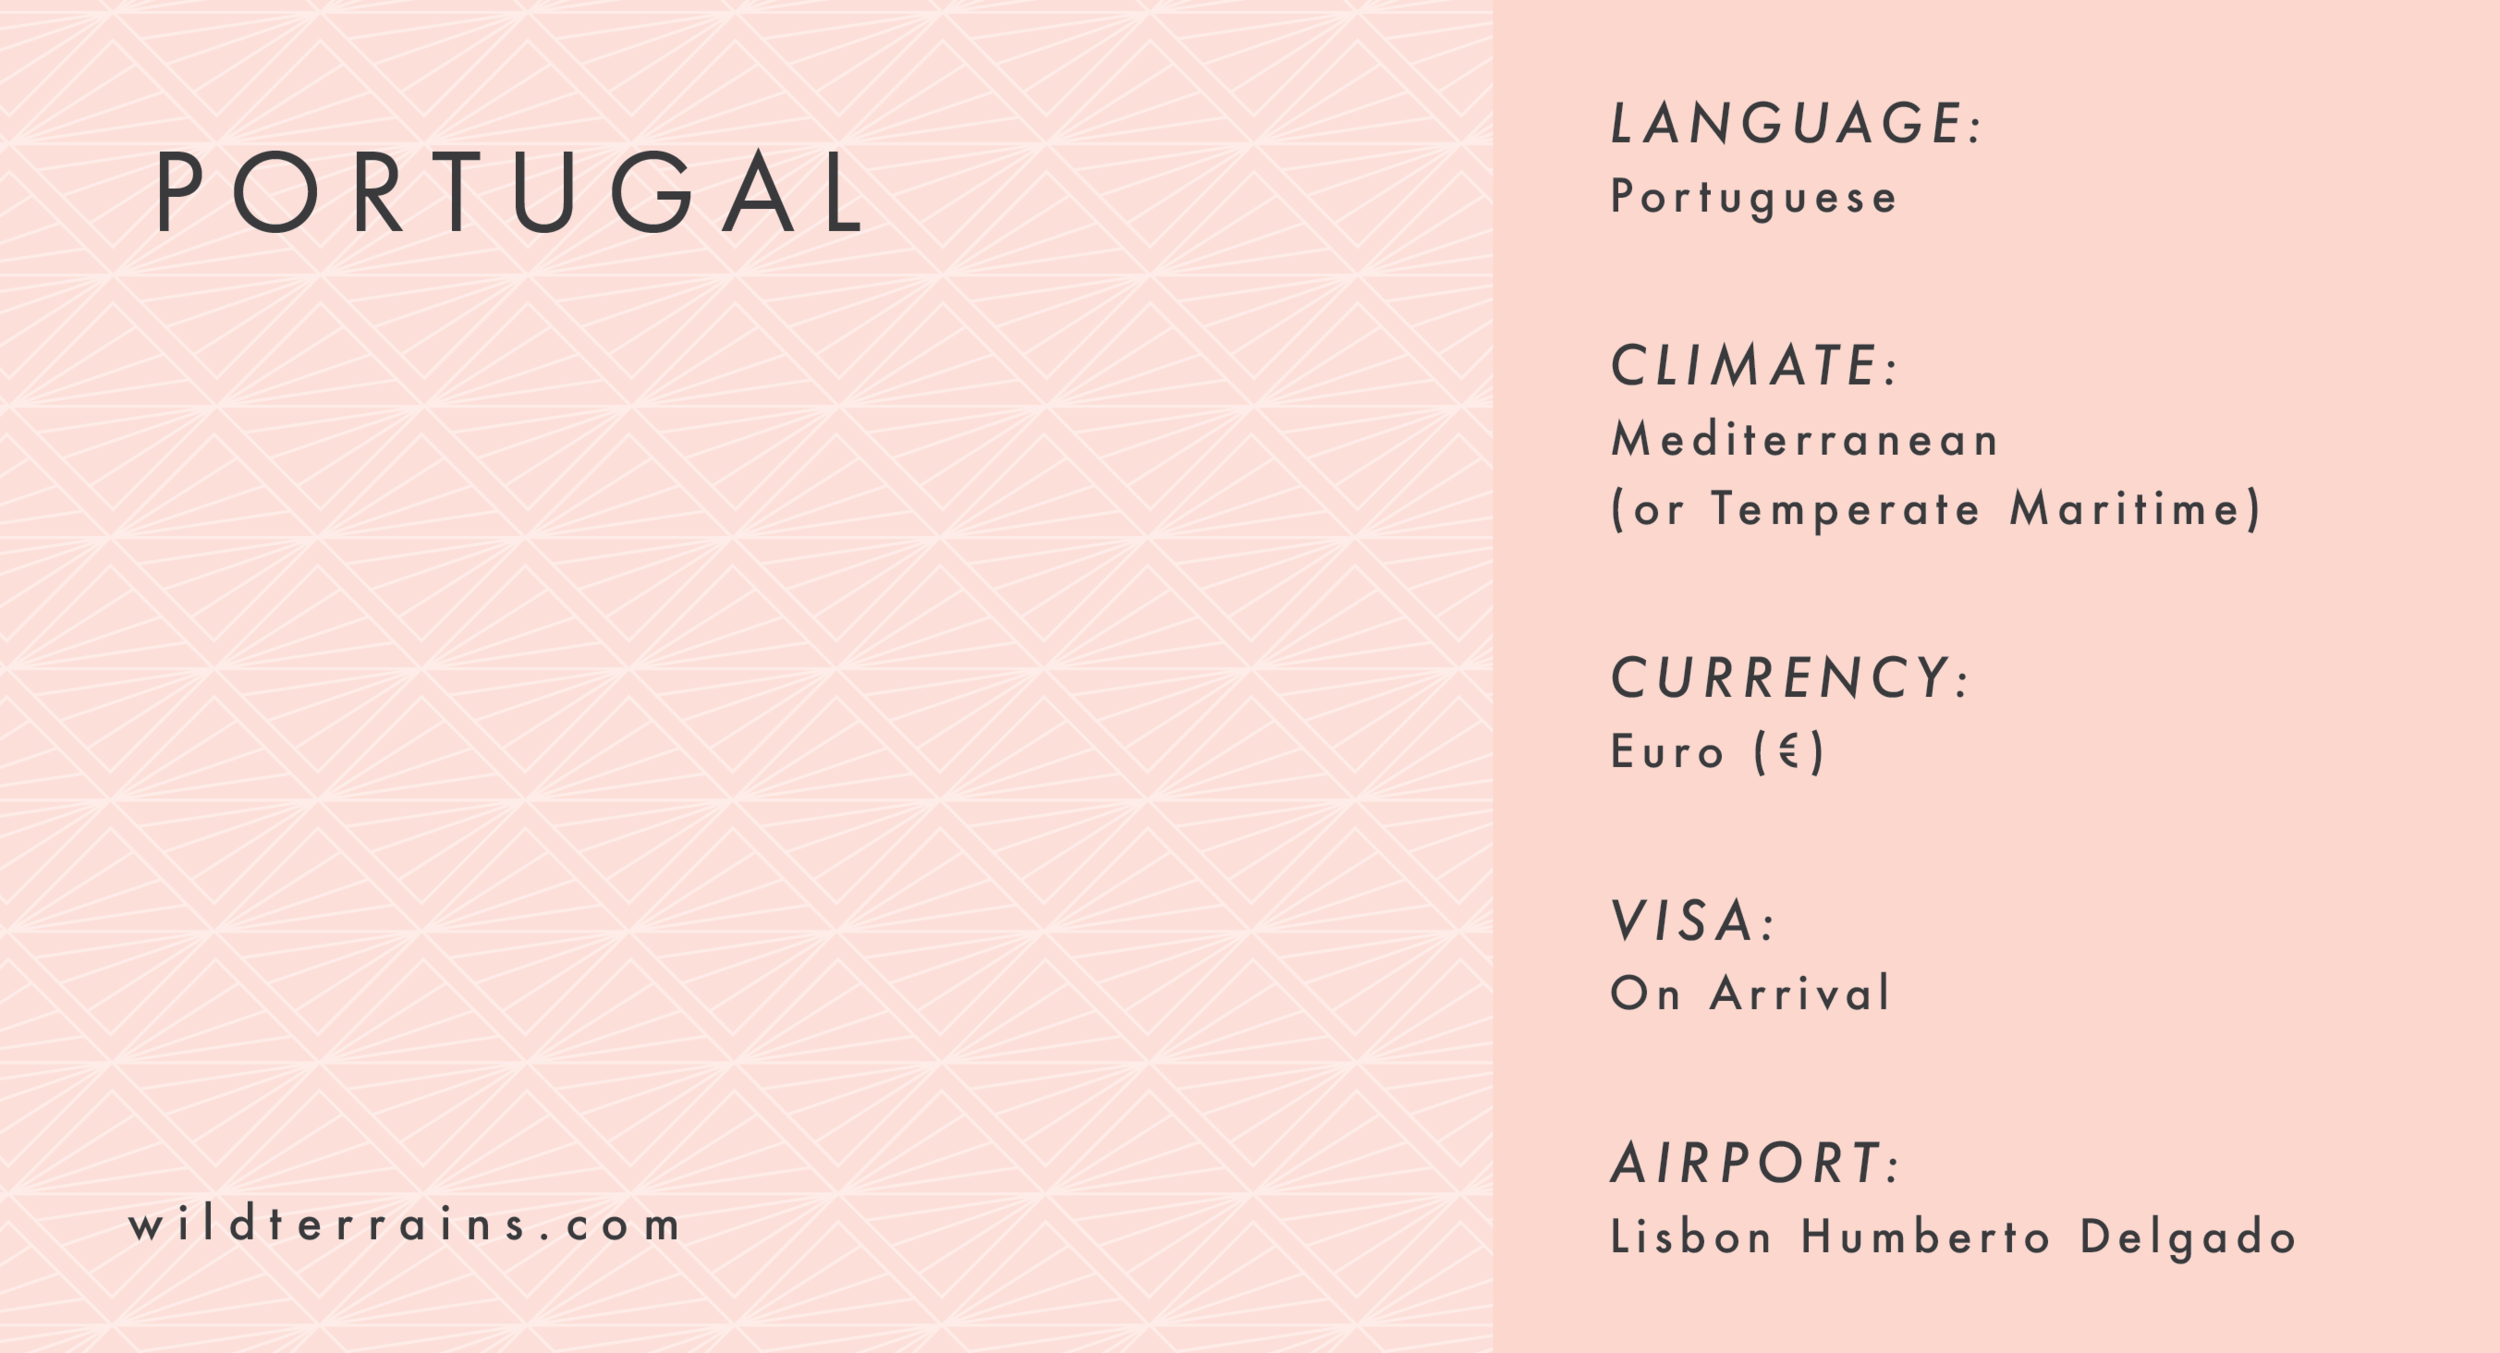 DestinationCard_Portugal-01.png